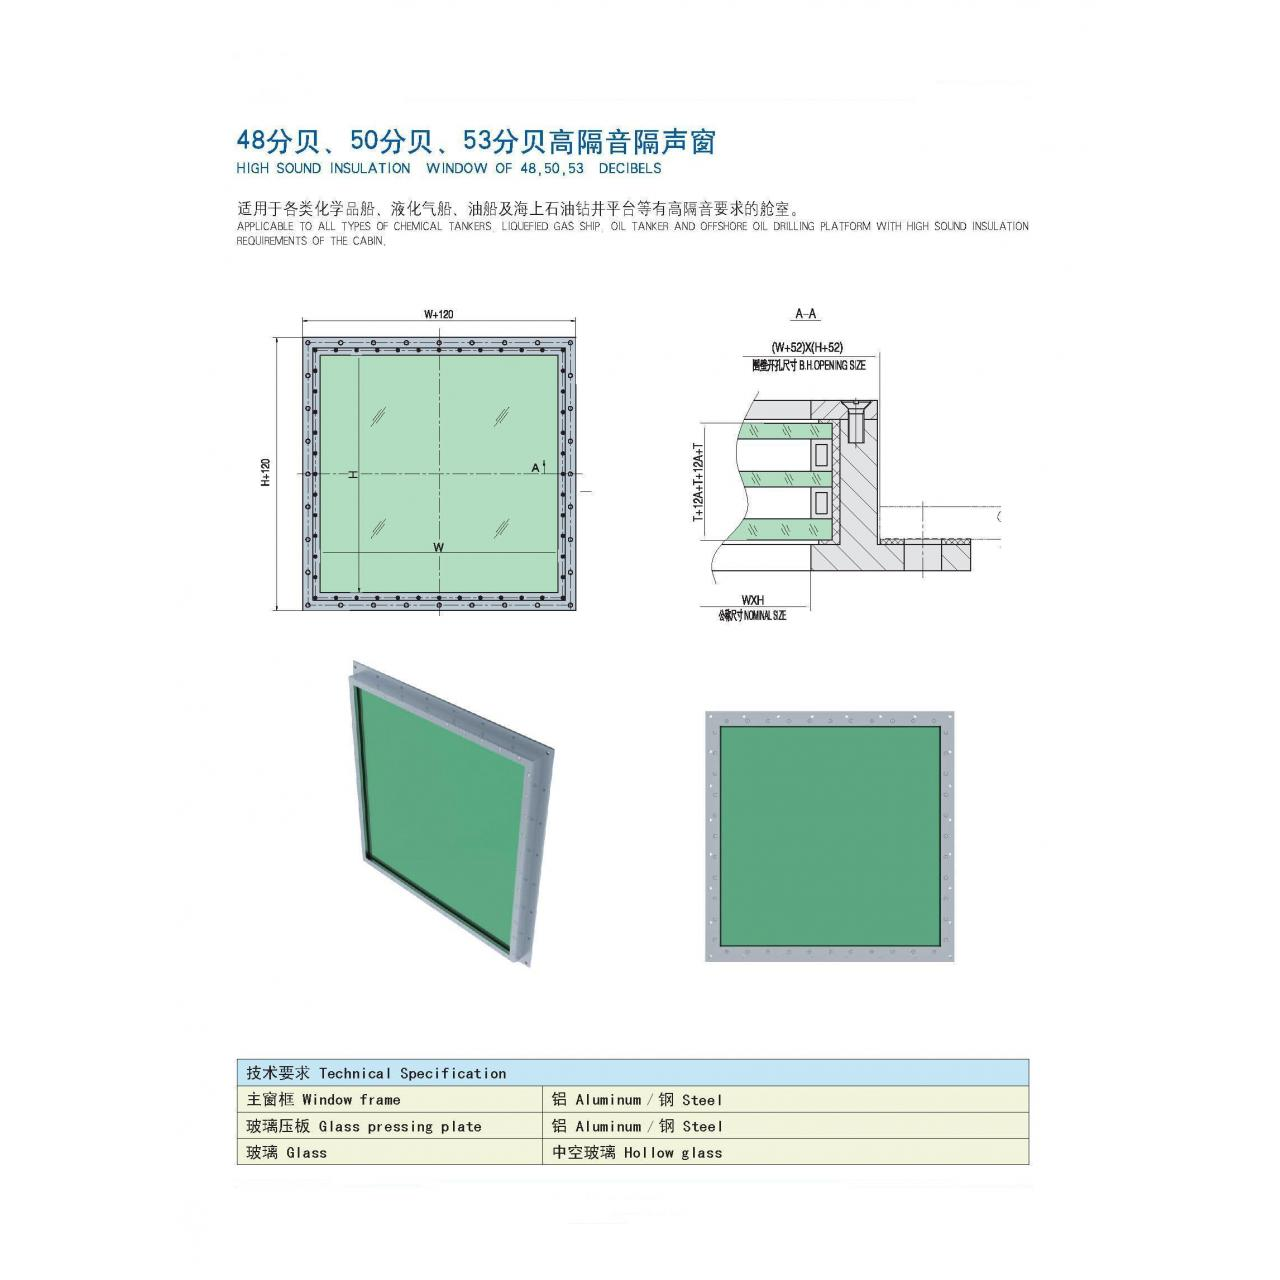 Buy cheap High sound insulation window of 48,50,53 decibels from wholesalers